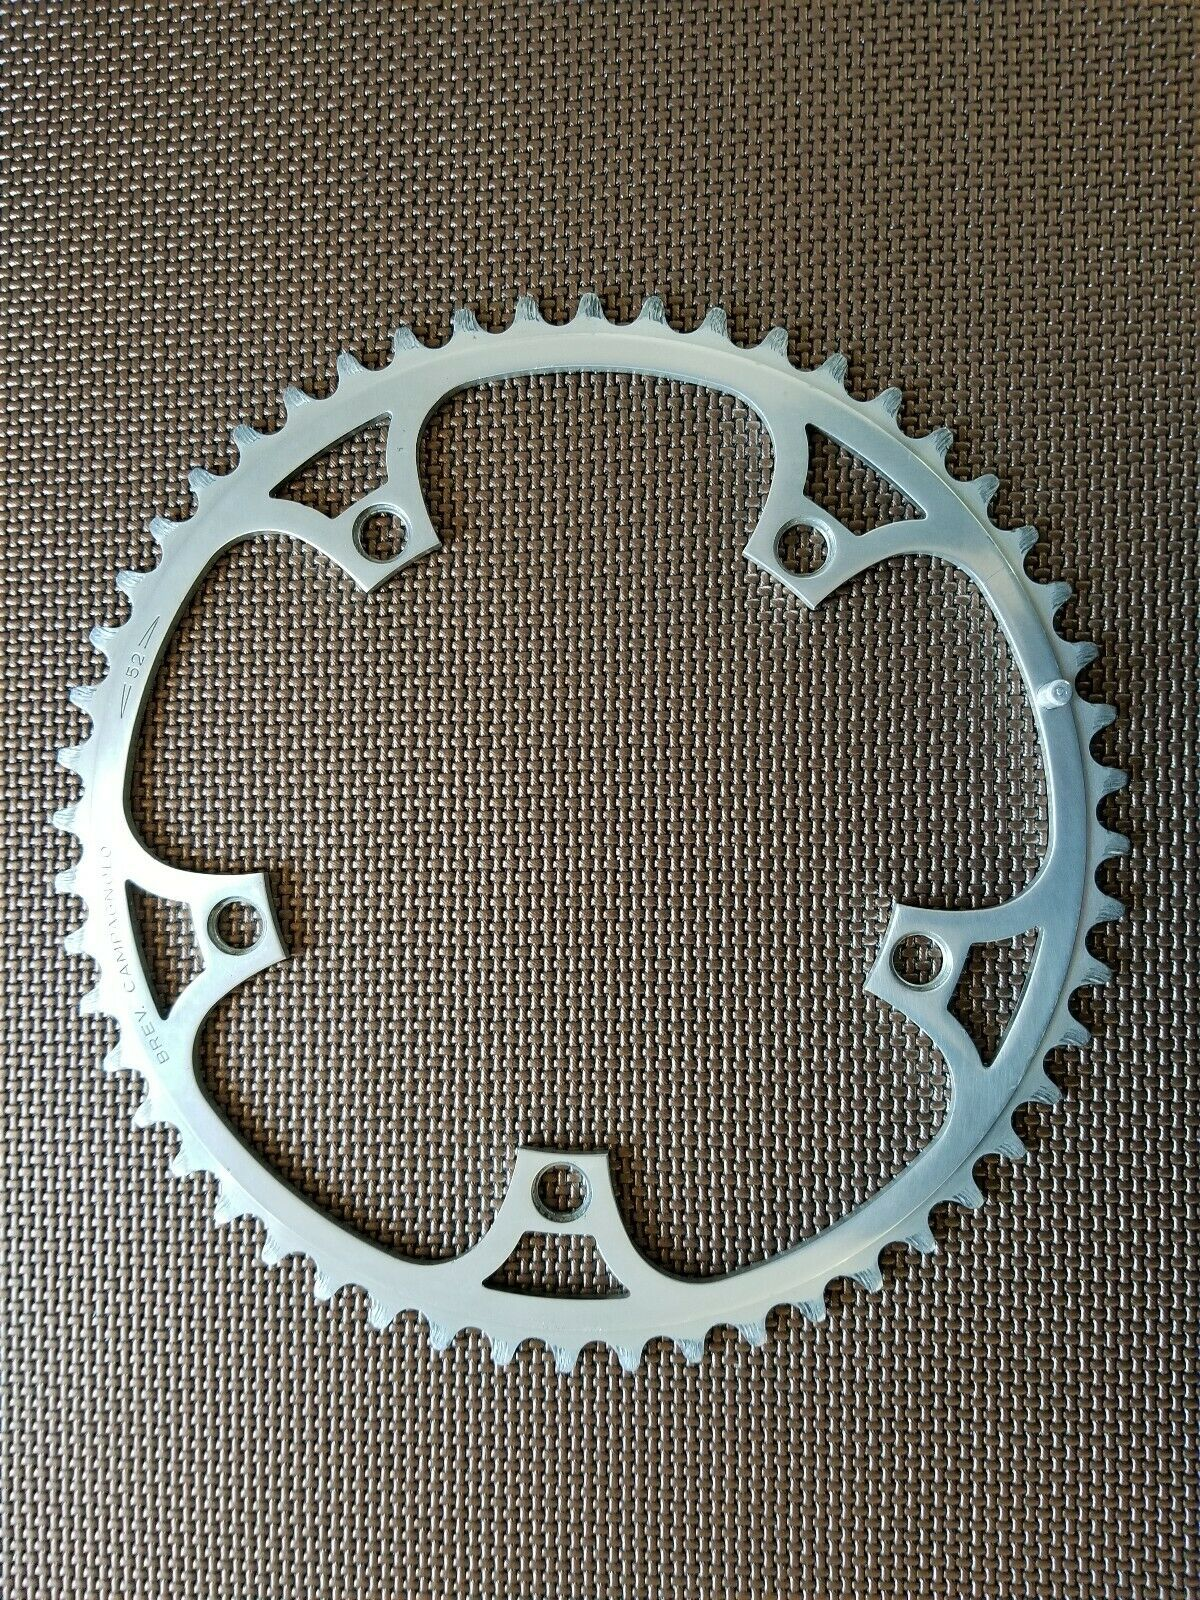 USED Campagnolo Super Record 52 t Chainring. 144 BCD. PATENT (CR29)